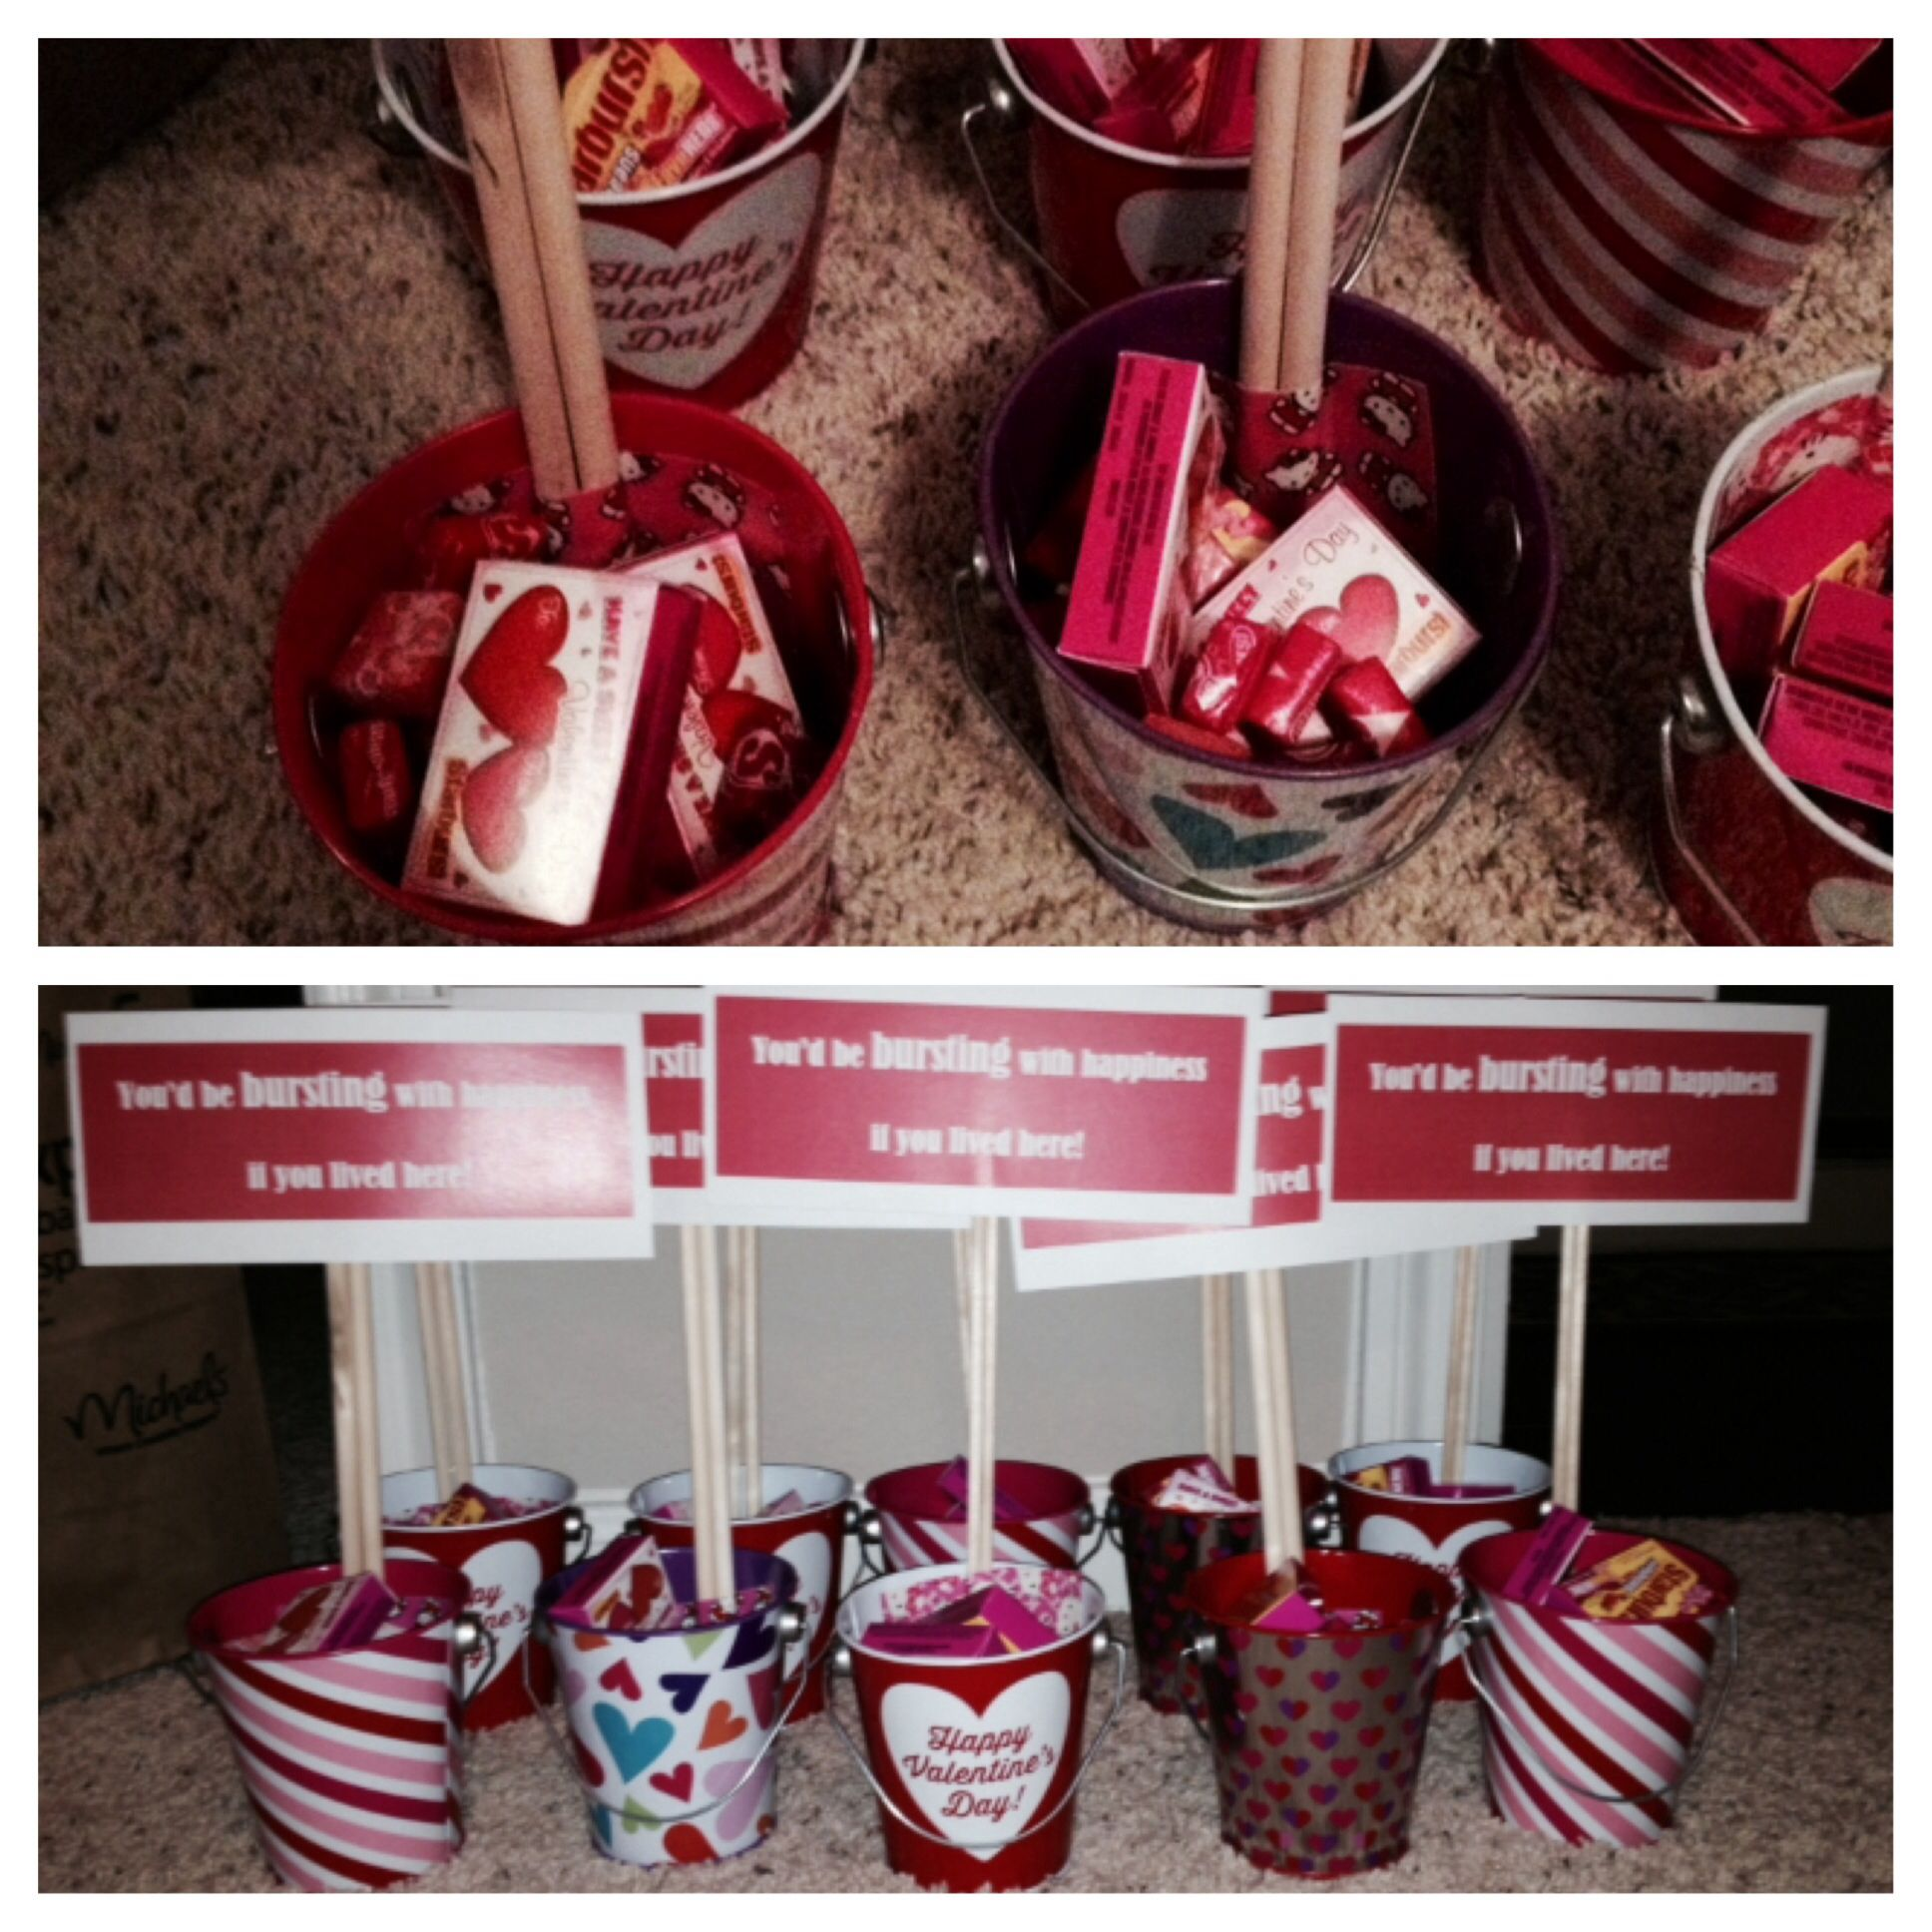 You D Be Bursting With Happiness If You Lived Here Since It S Valentines Get Favorite Reds Starburst Out Reach Apartment Marketing Ideas